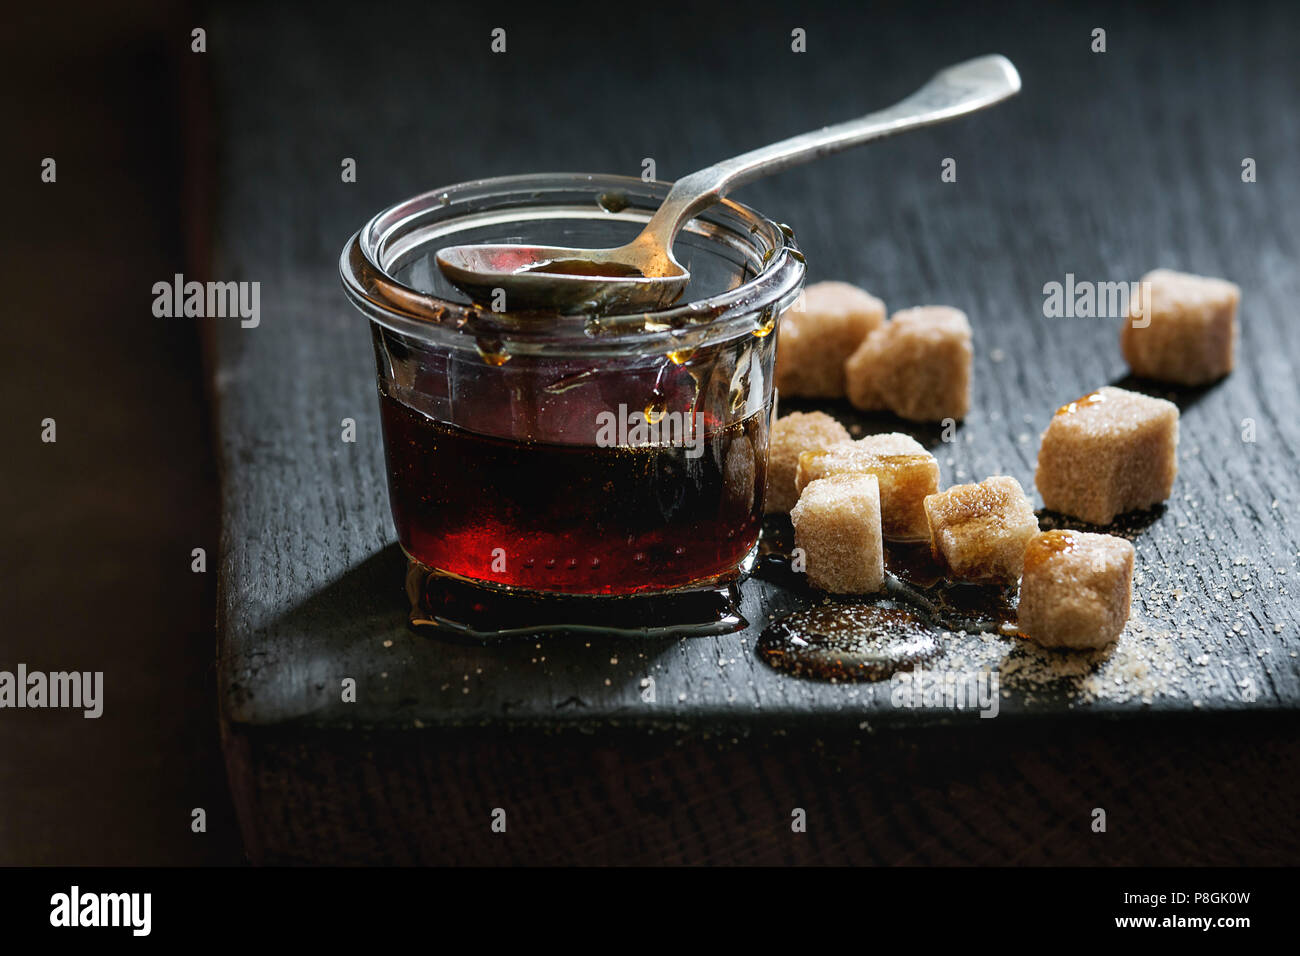 Homemade liquid transparent brown sugar caramel in glass jar standing on black wooden board with spoon and can sugar cubes. Close up. Day light - Stock Image